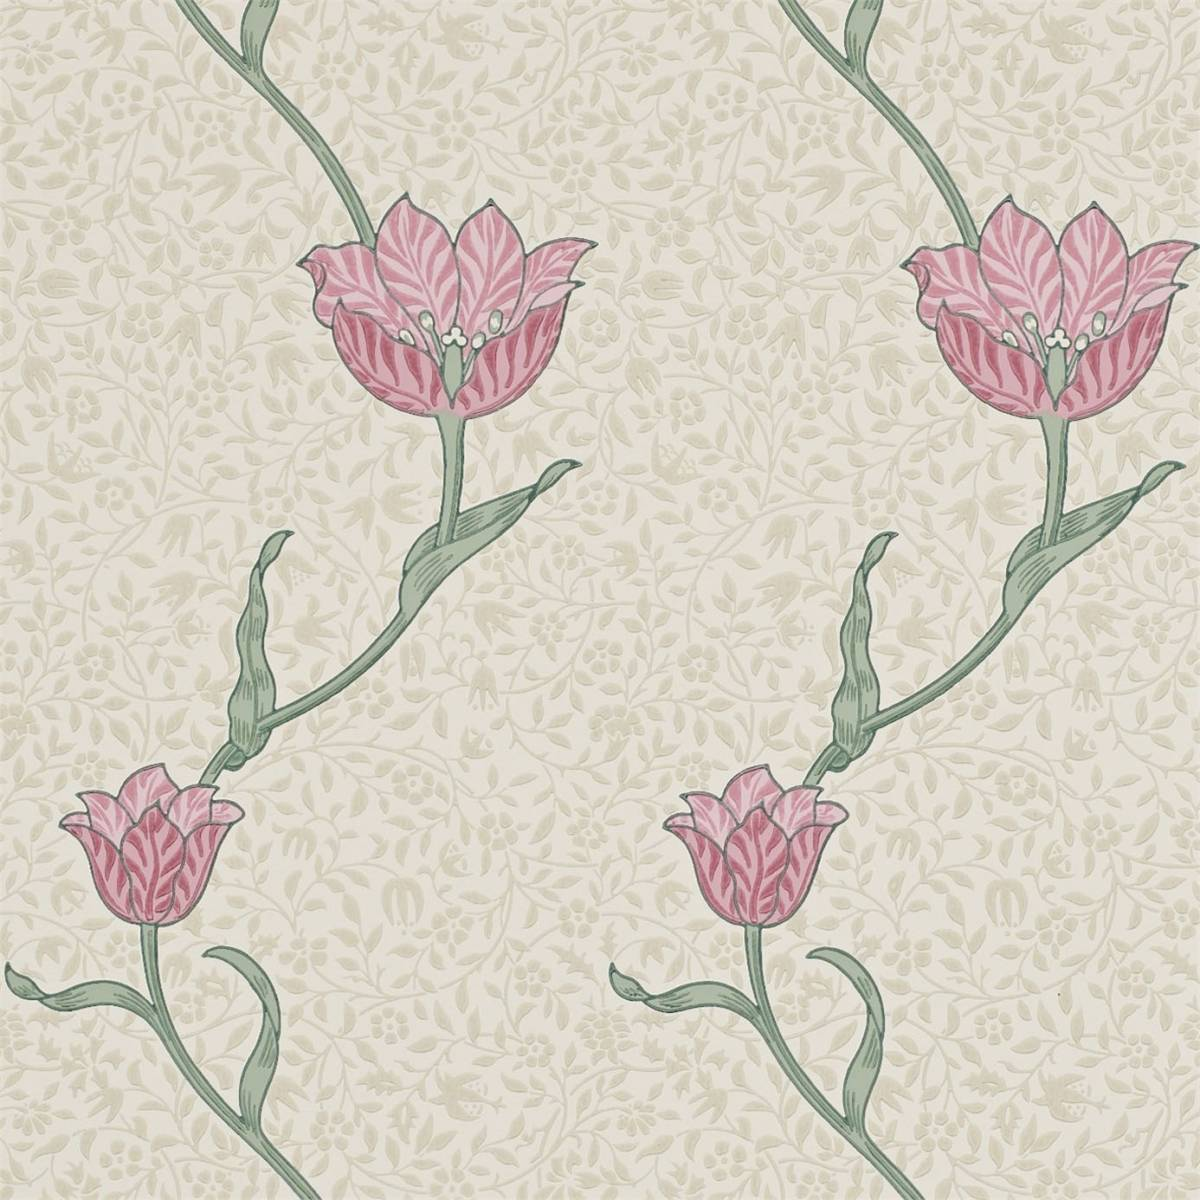 Font B Dyed B Font Silk Georgette Fabric likewise 208010076512414879 besides 208010076513241655 furthermore The Voysey Border Rug Pc 8a additionally Decorating Style Mission Craftsman Or Arts And Crafts Design. on arts and crafts mission fabrics